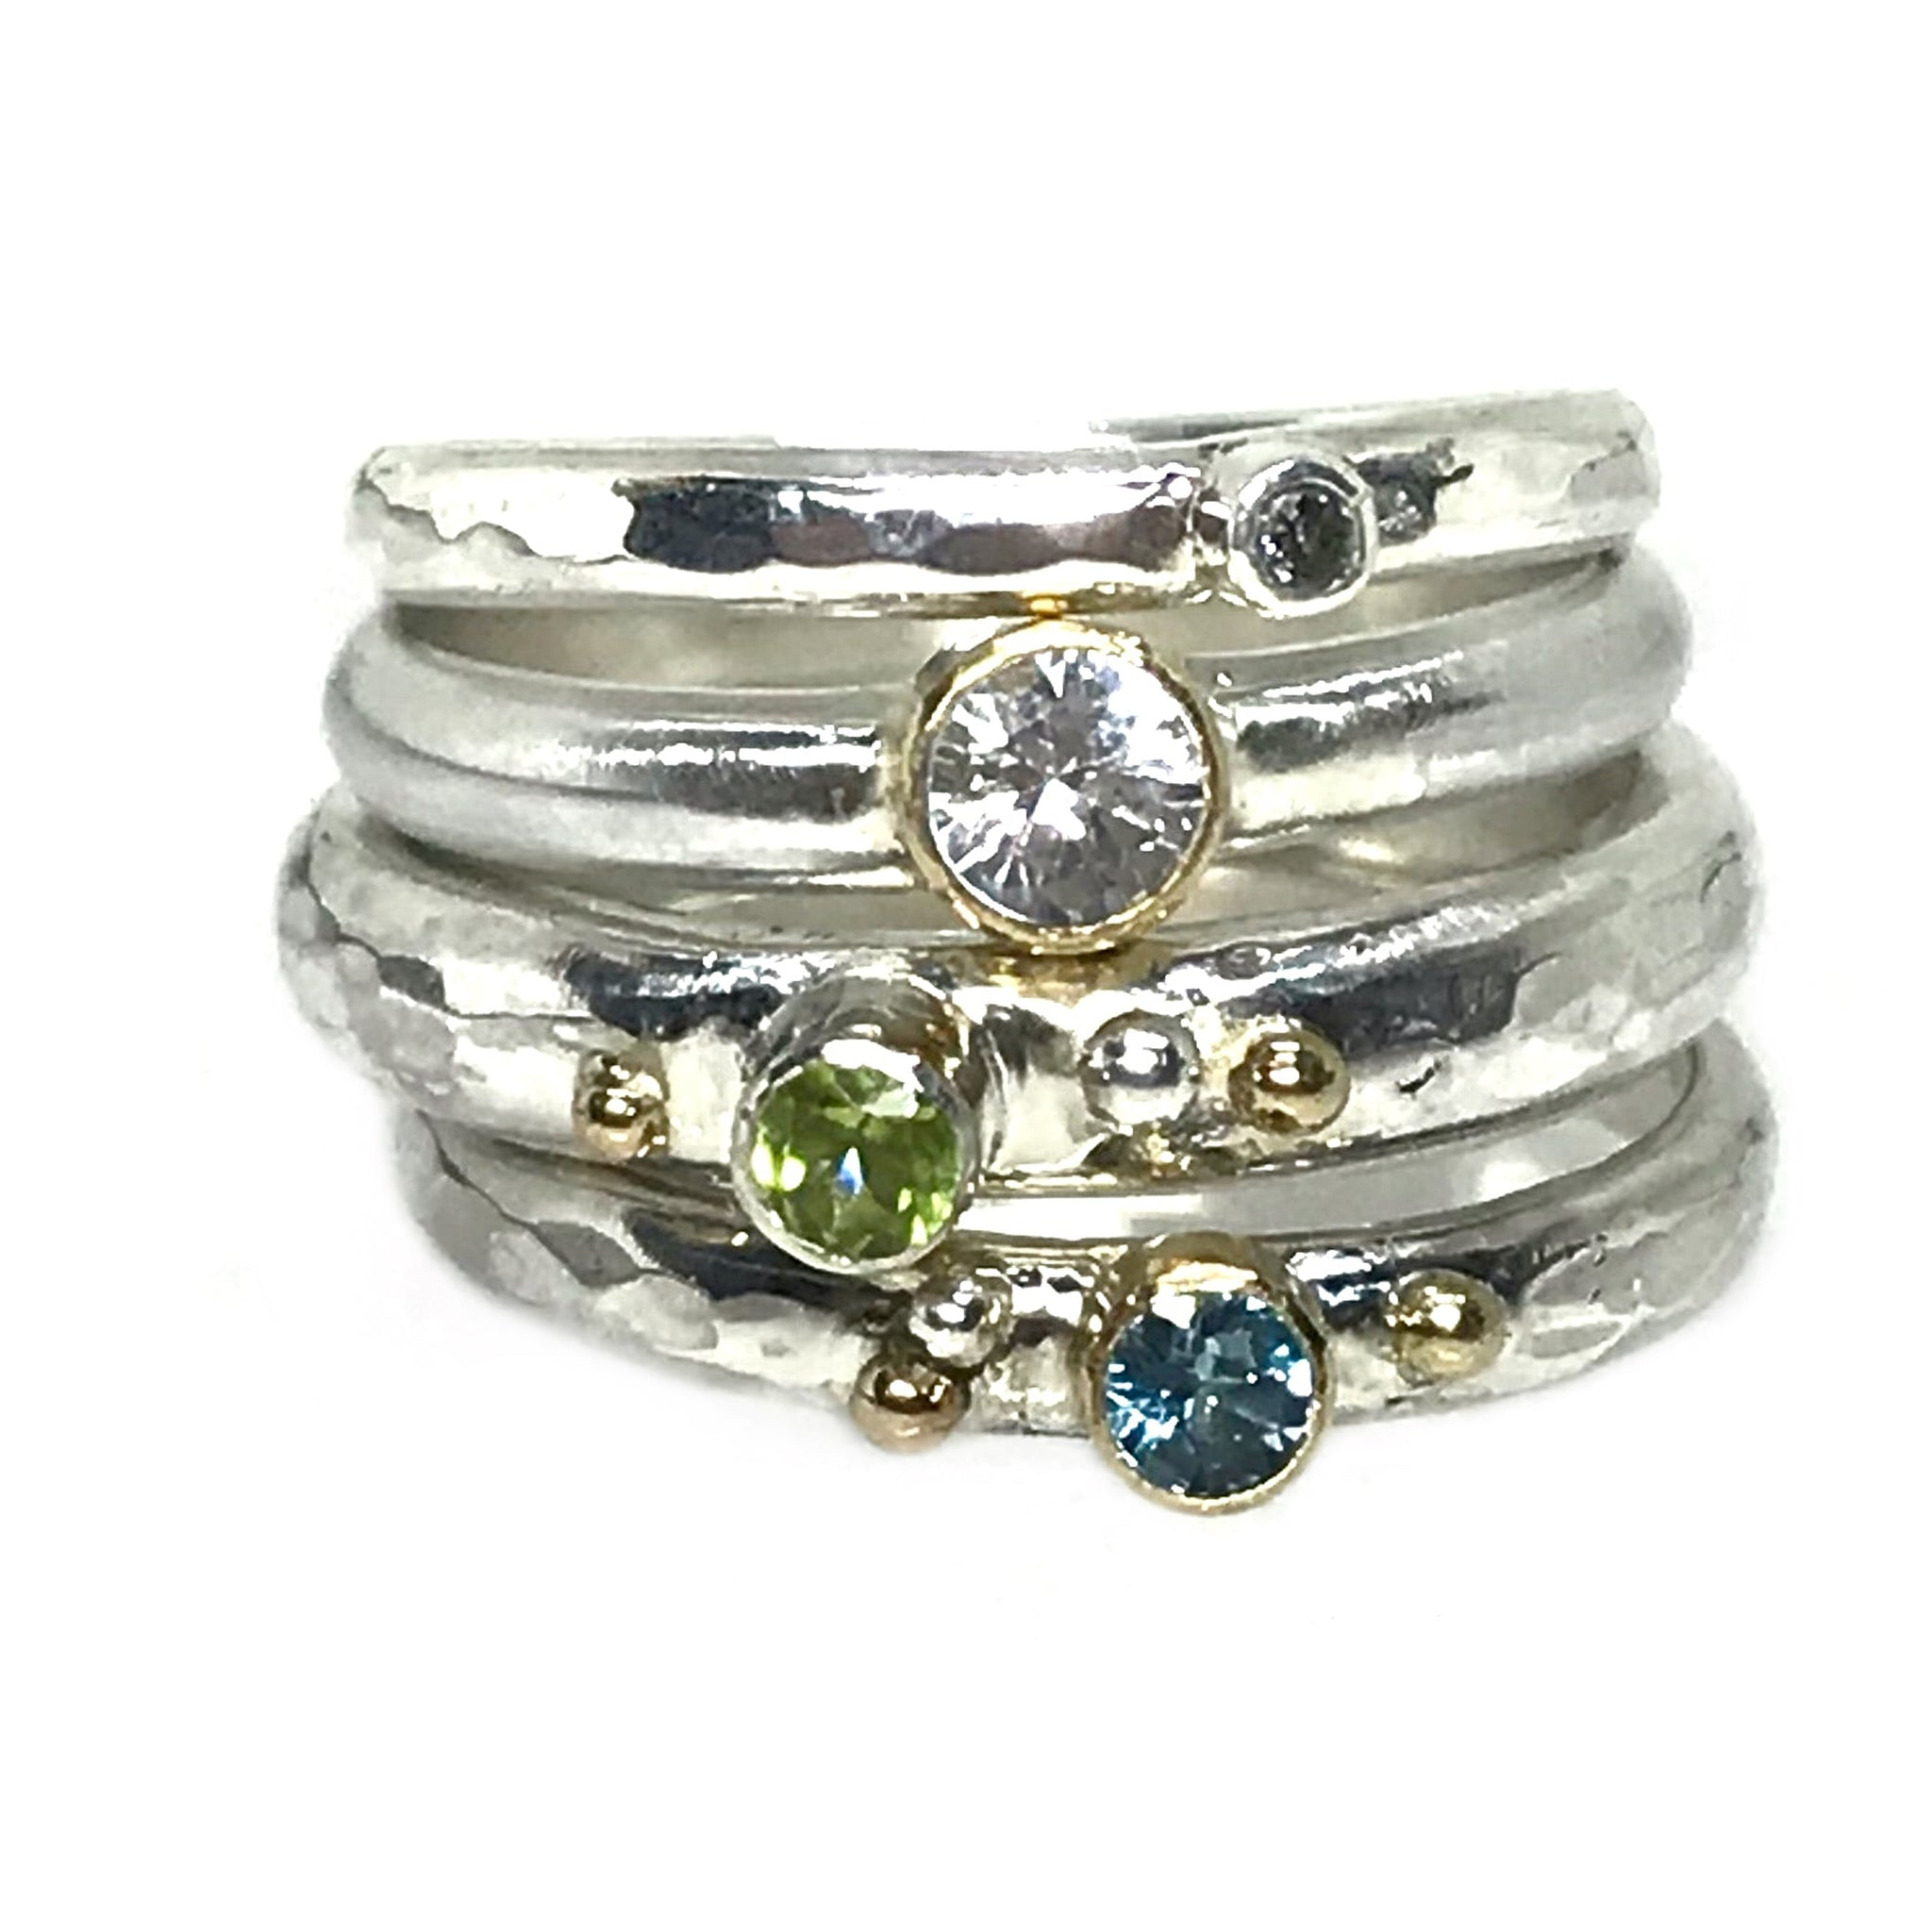 gemstone stacking rings kriket broadhurst jewellery